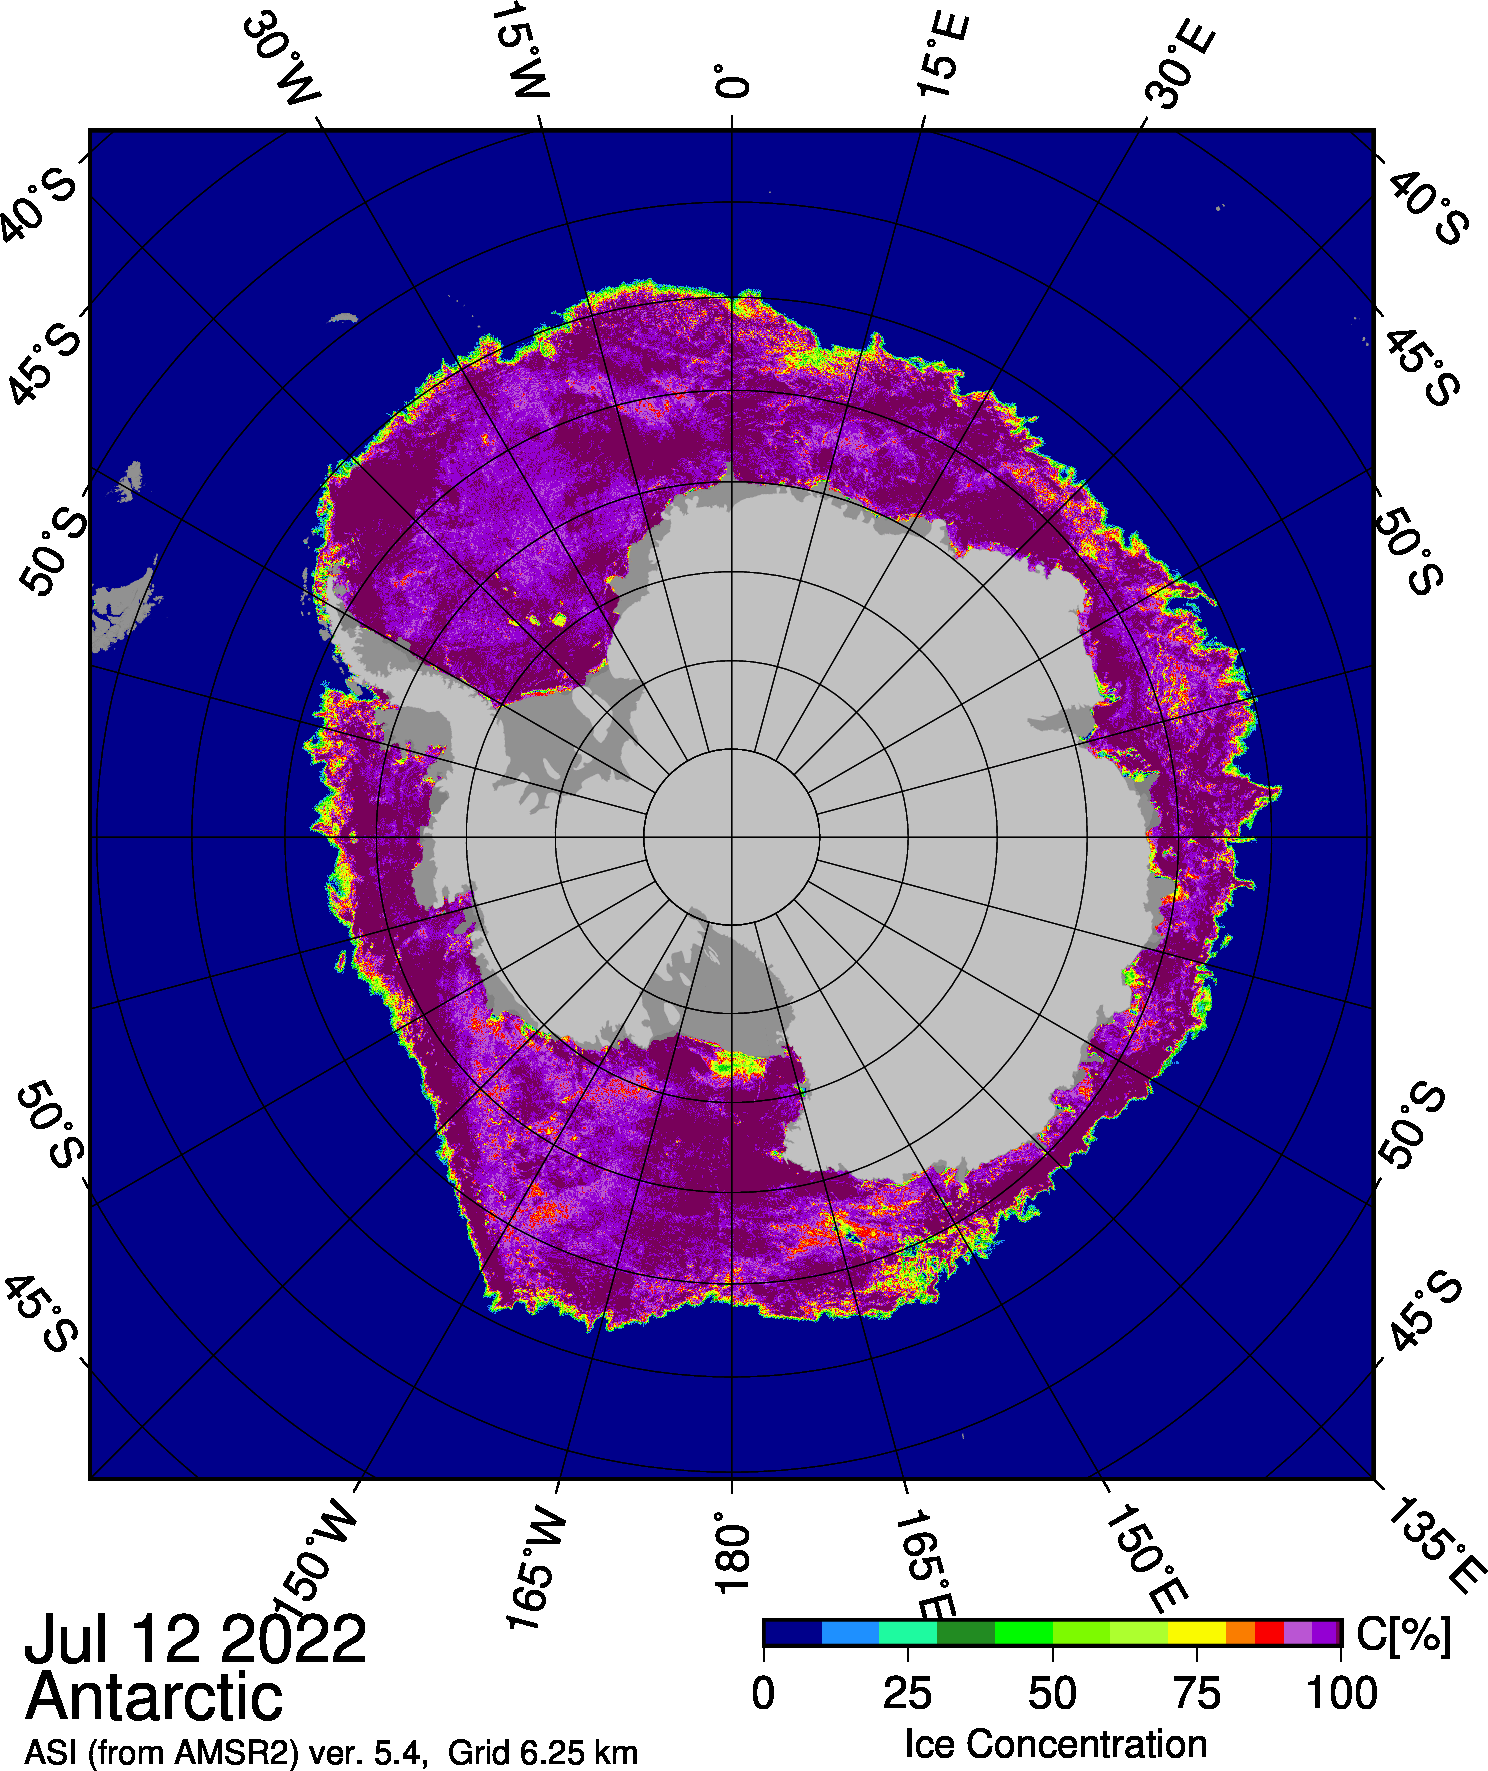 AMSR2 Antarctic sea ice concentration from the University of Bremen